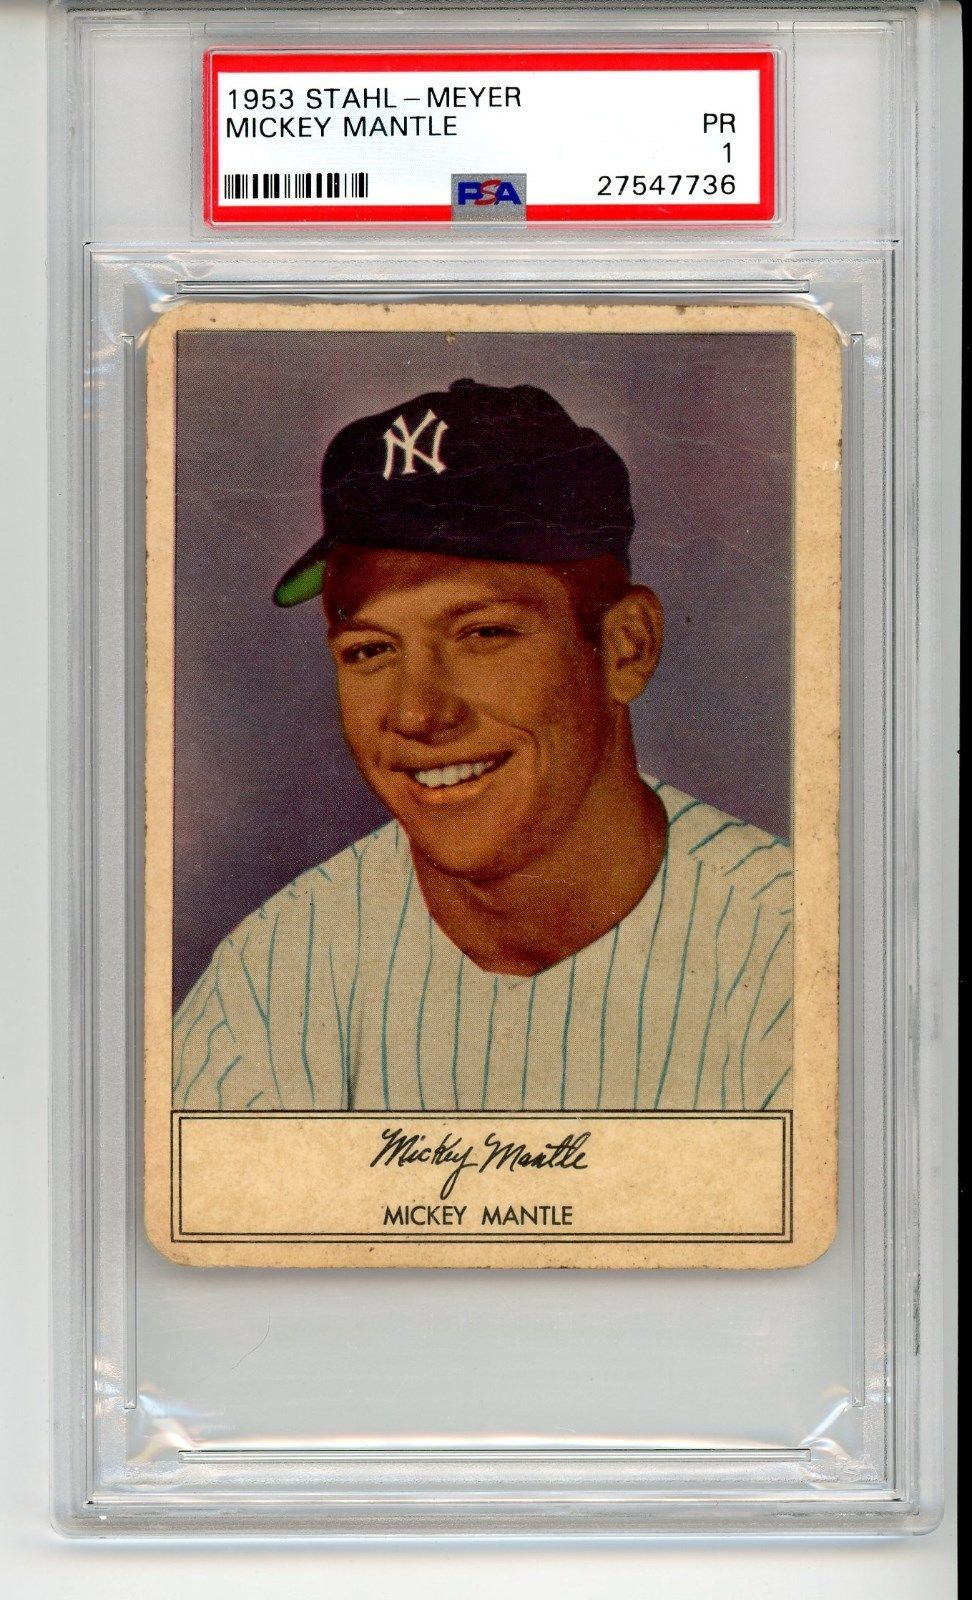 1953 Stahl Meyer Mickey Mantle Psa 1 Very Low Pop Rare Mantle Great Eye Appeal Mickey Mantle Mantle Baseball Wall